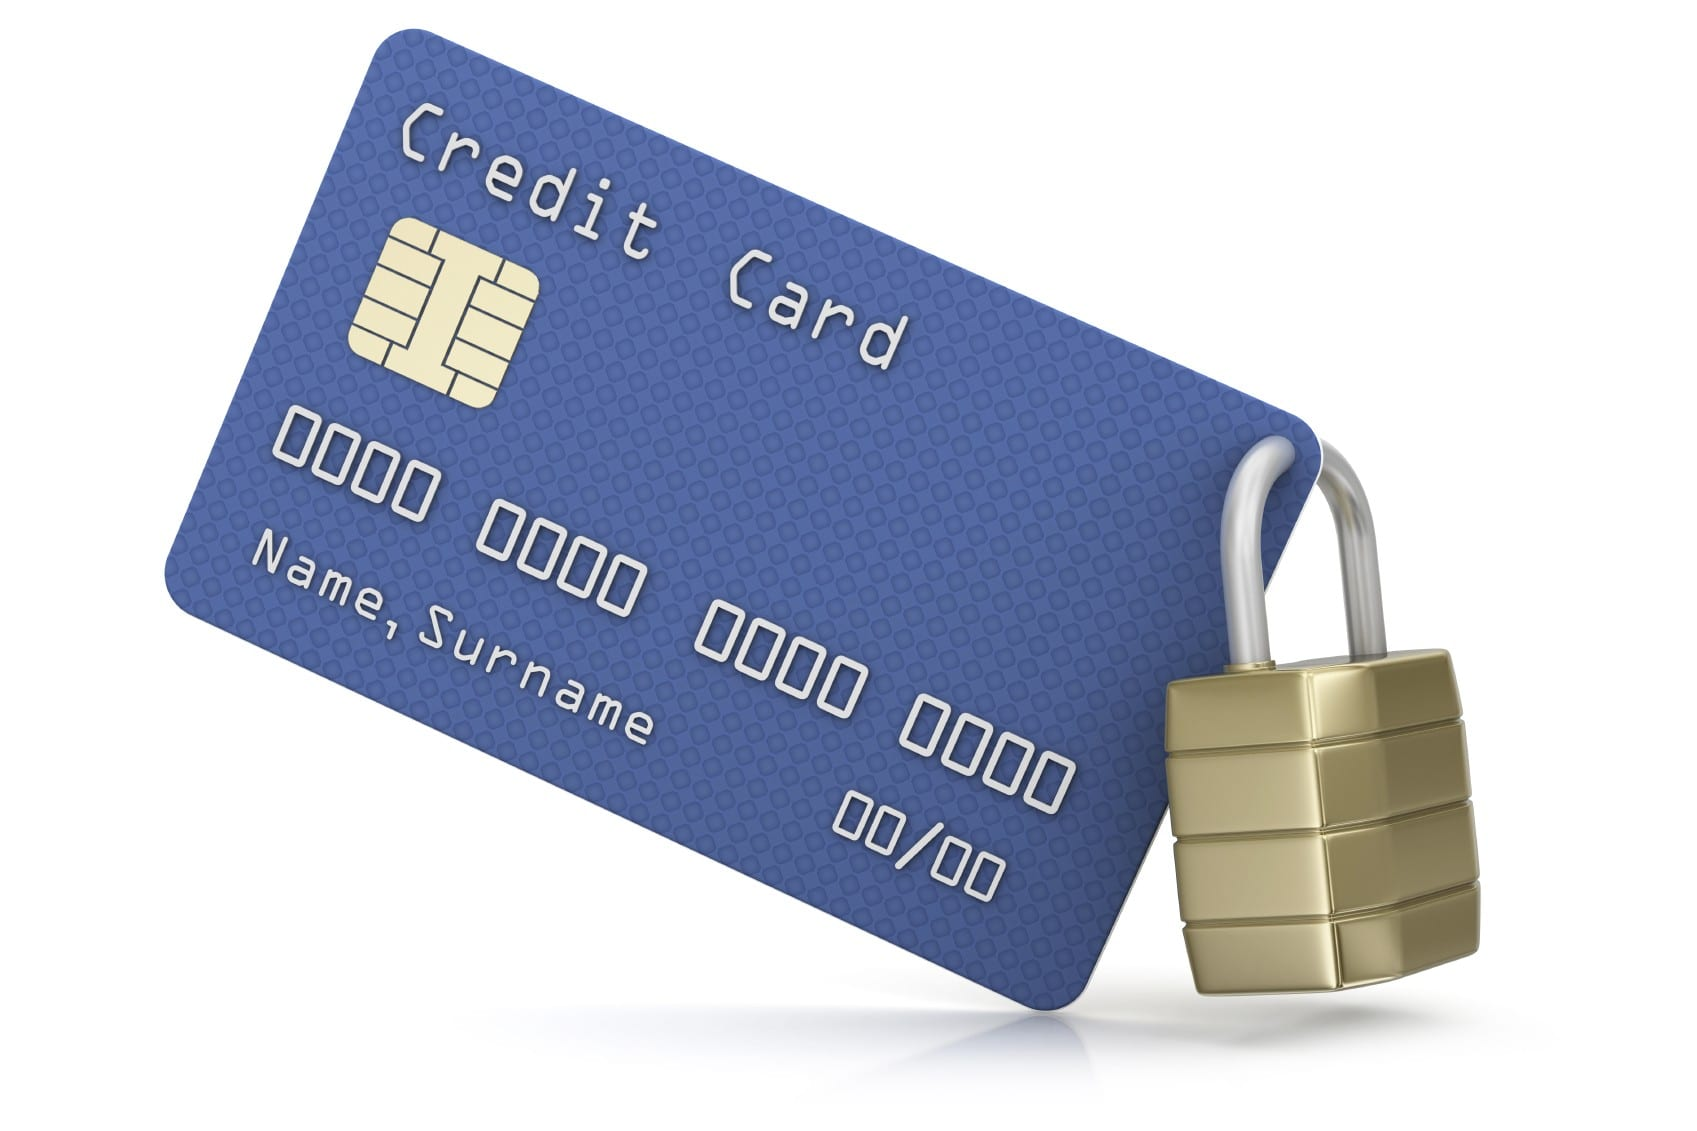 Choosing Unsecured Credit Cards Can Be Very Easy Today